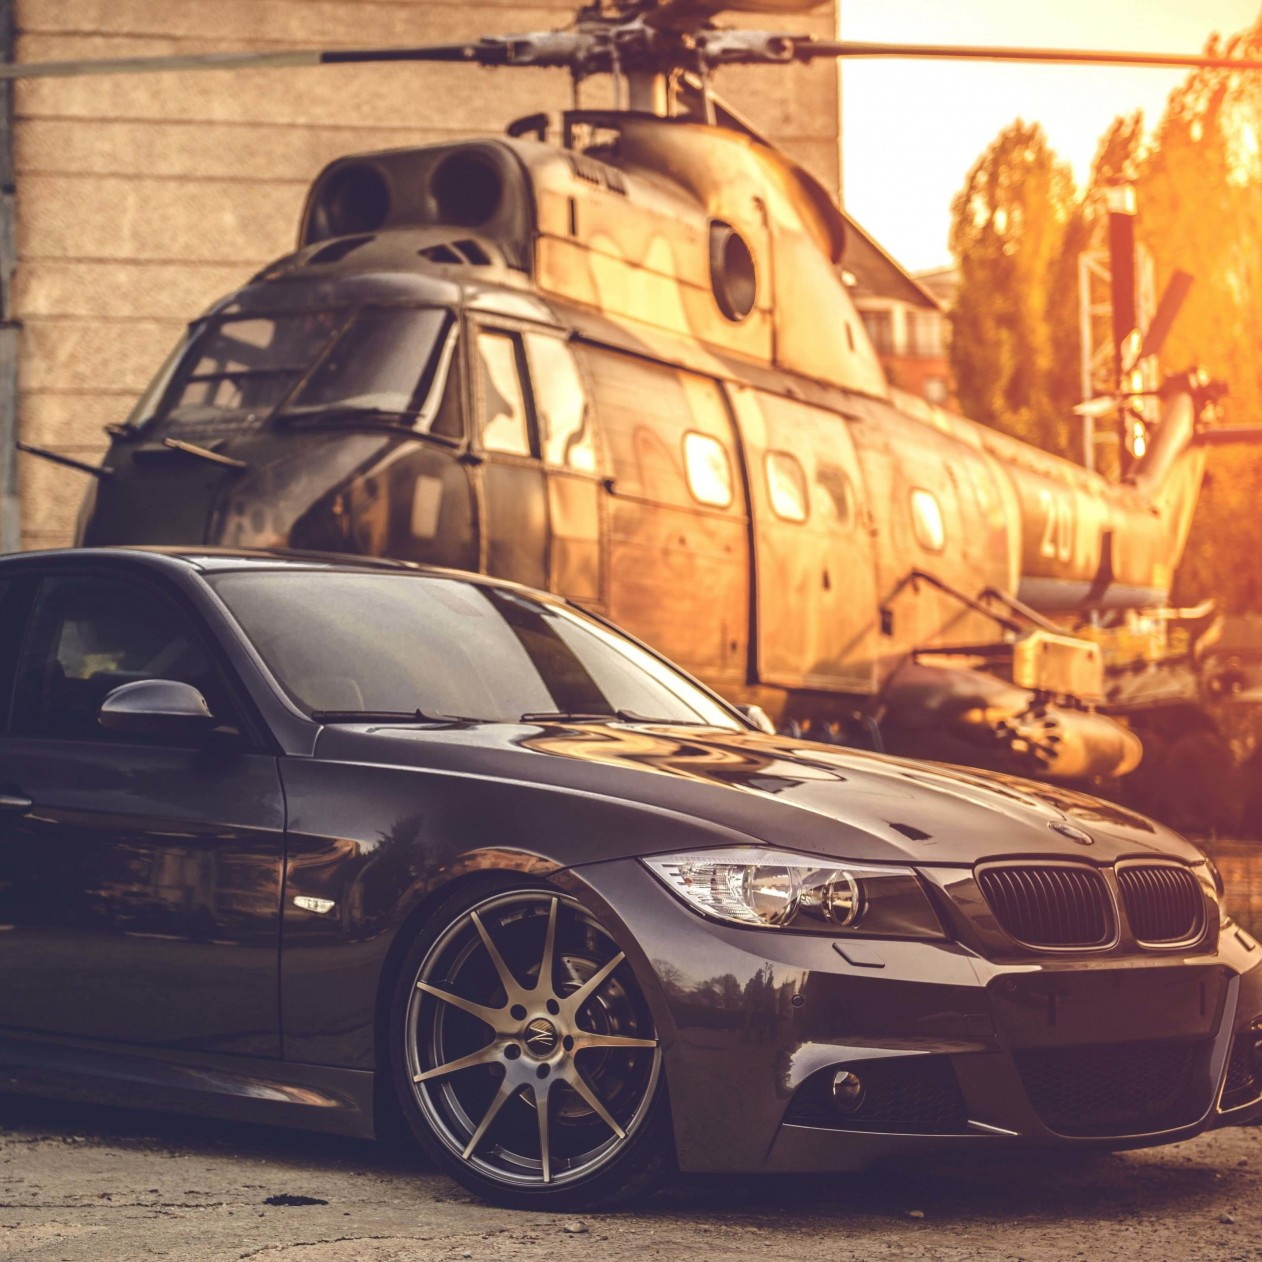 BMW E90 on Z-Performance Wheels Wallpaper for Apple iPad mini